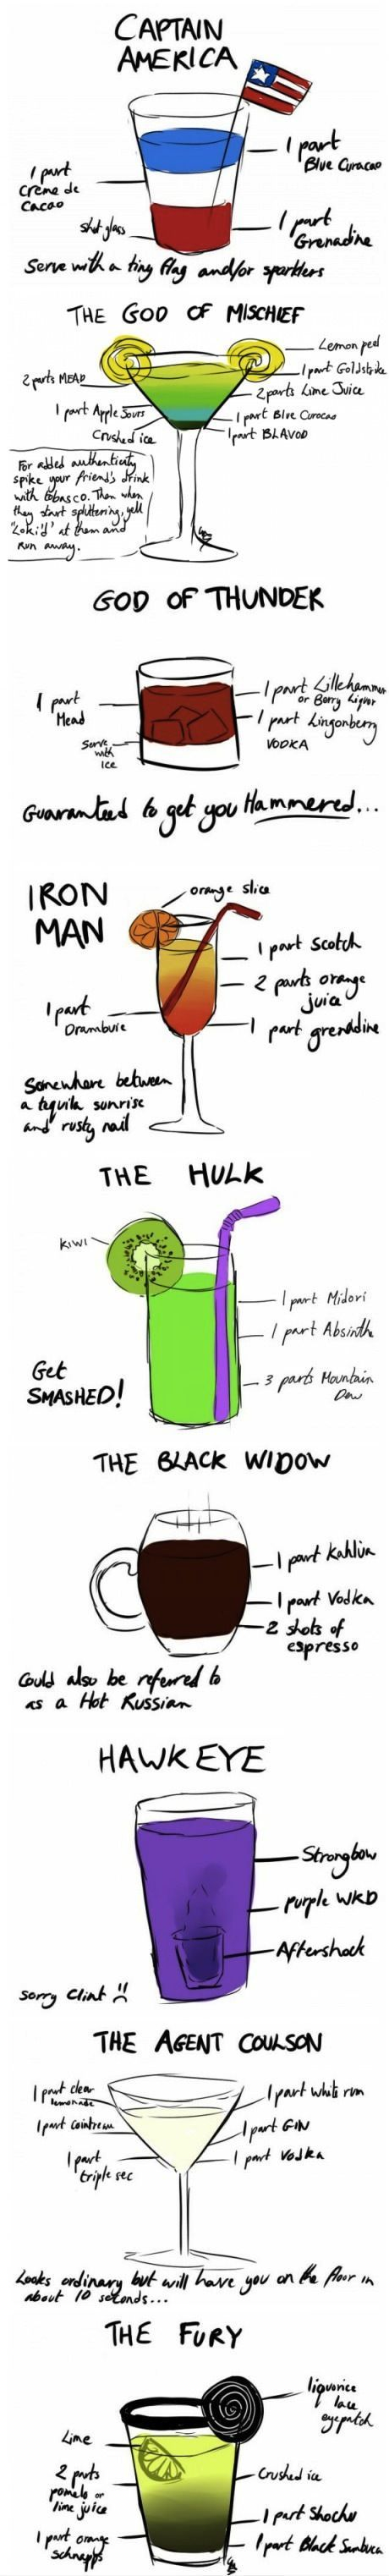 The Avengers mixed drinks... sounds interesting...: Avengers Parties, Idea, Recipe, Food, Avengers Cocktails, Superheroes, Avengers Drinks, Super Heroes, The Avengers